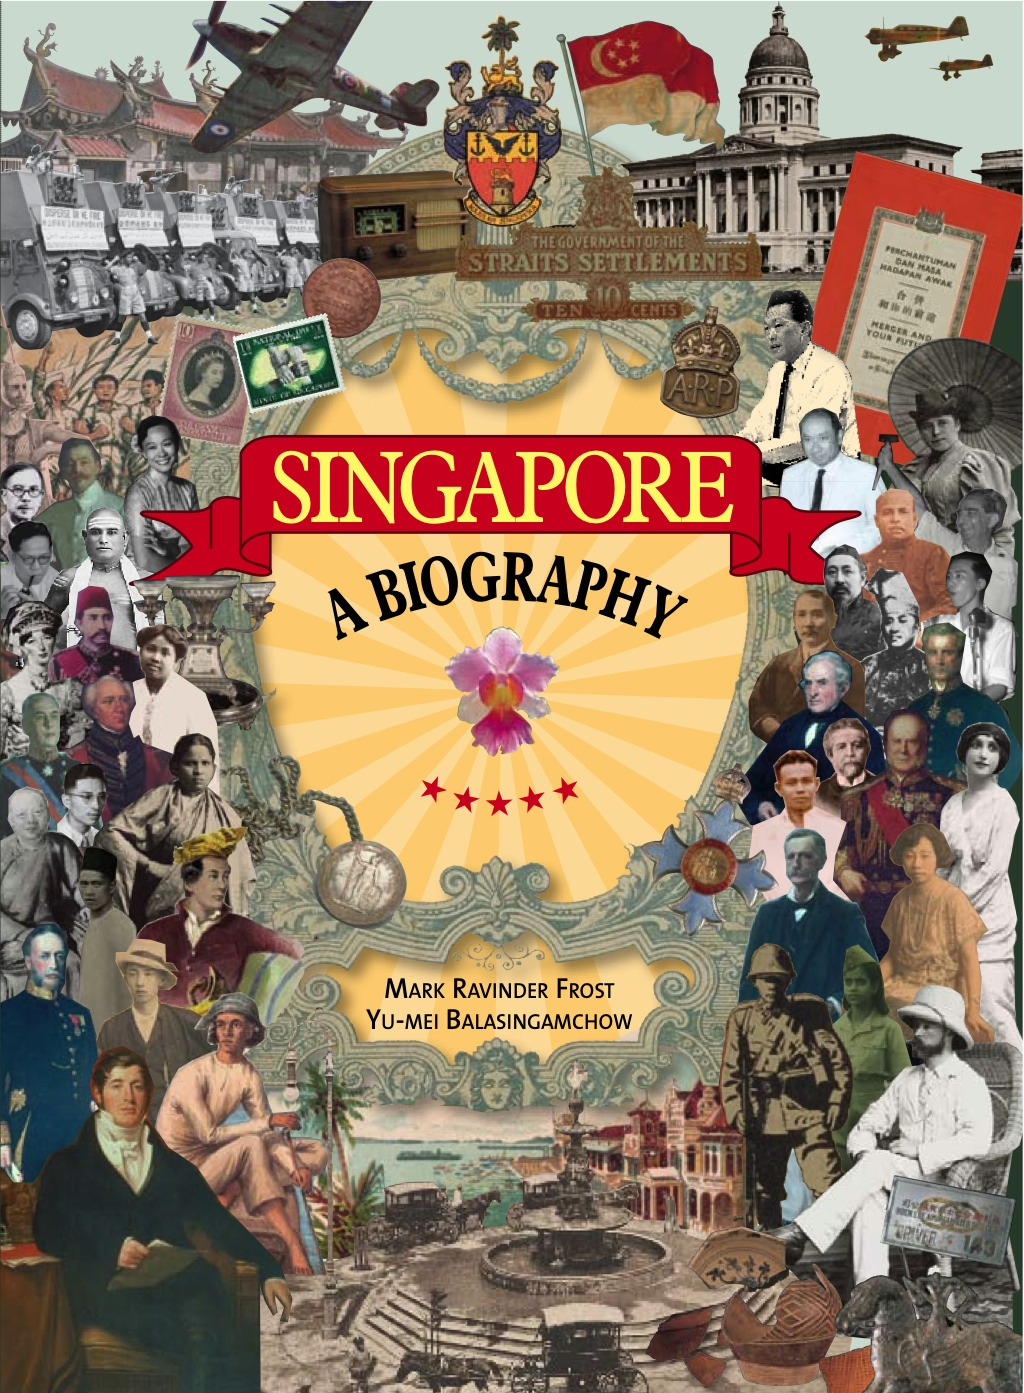 Singapore: A Biography book cover art